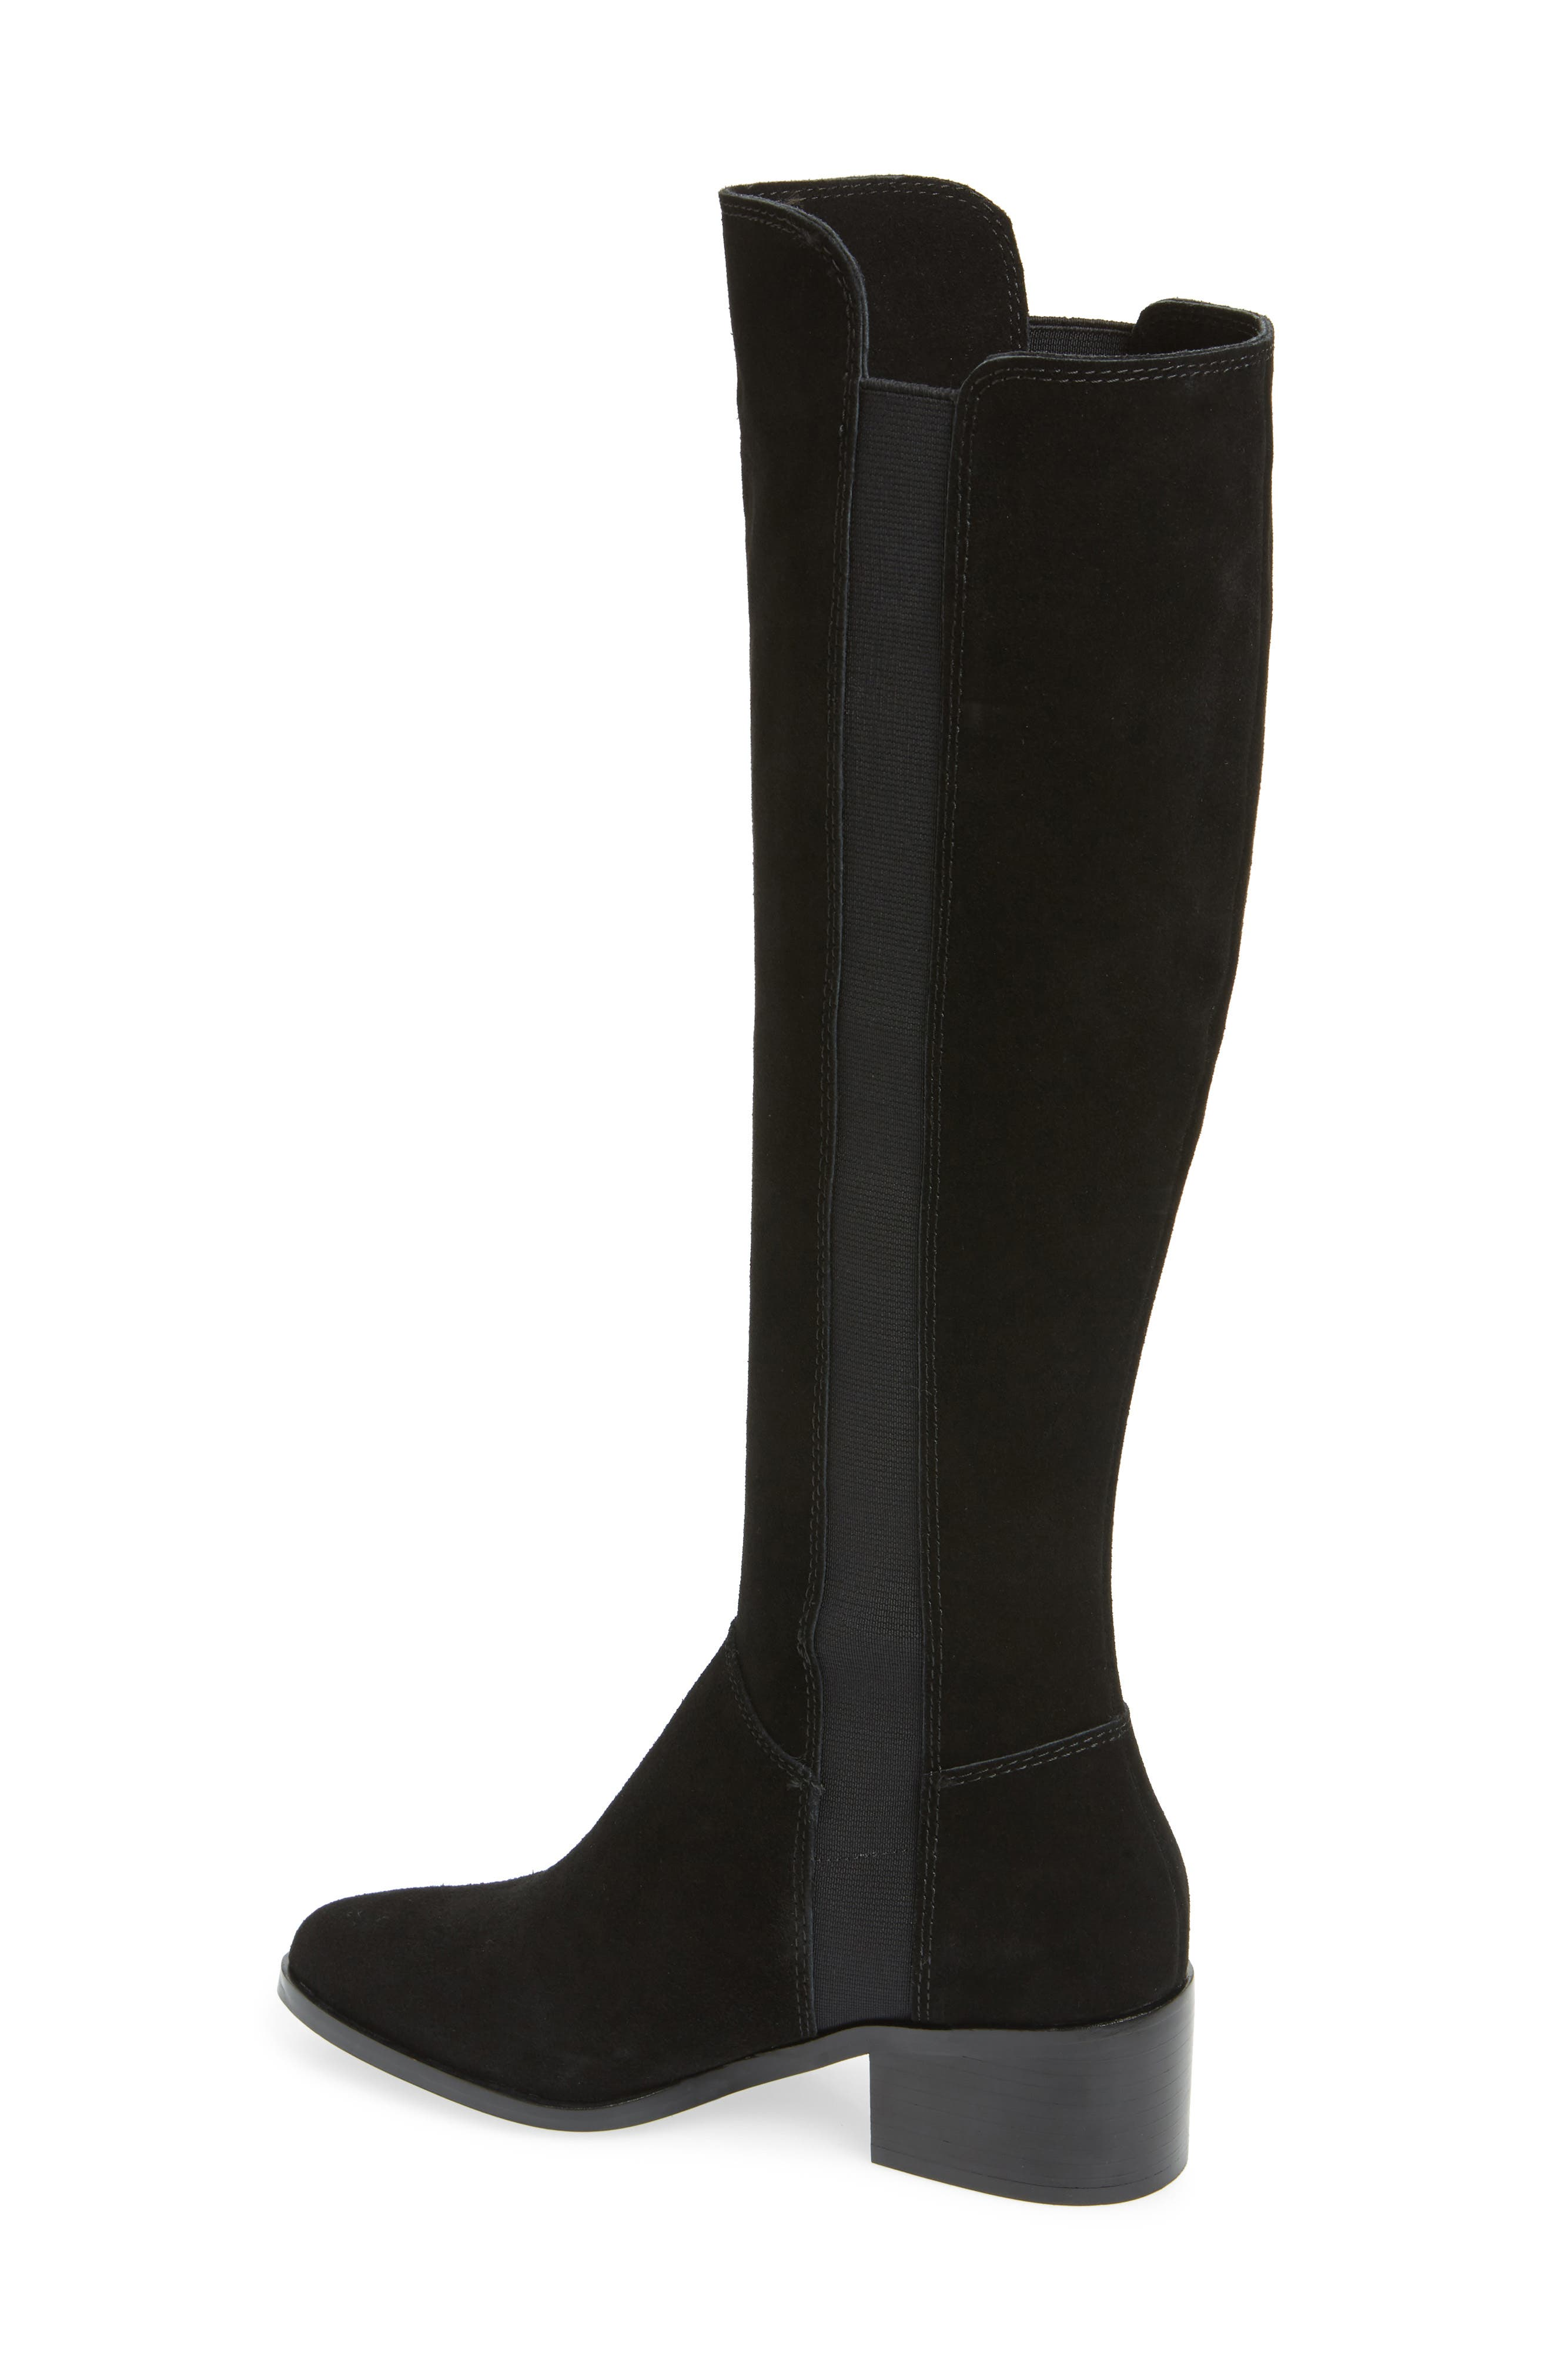 Giselle Over the Knee Boot,                             Alternate thumbnail 2, color,                             BLACK SUEDE